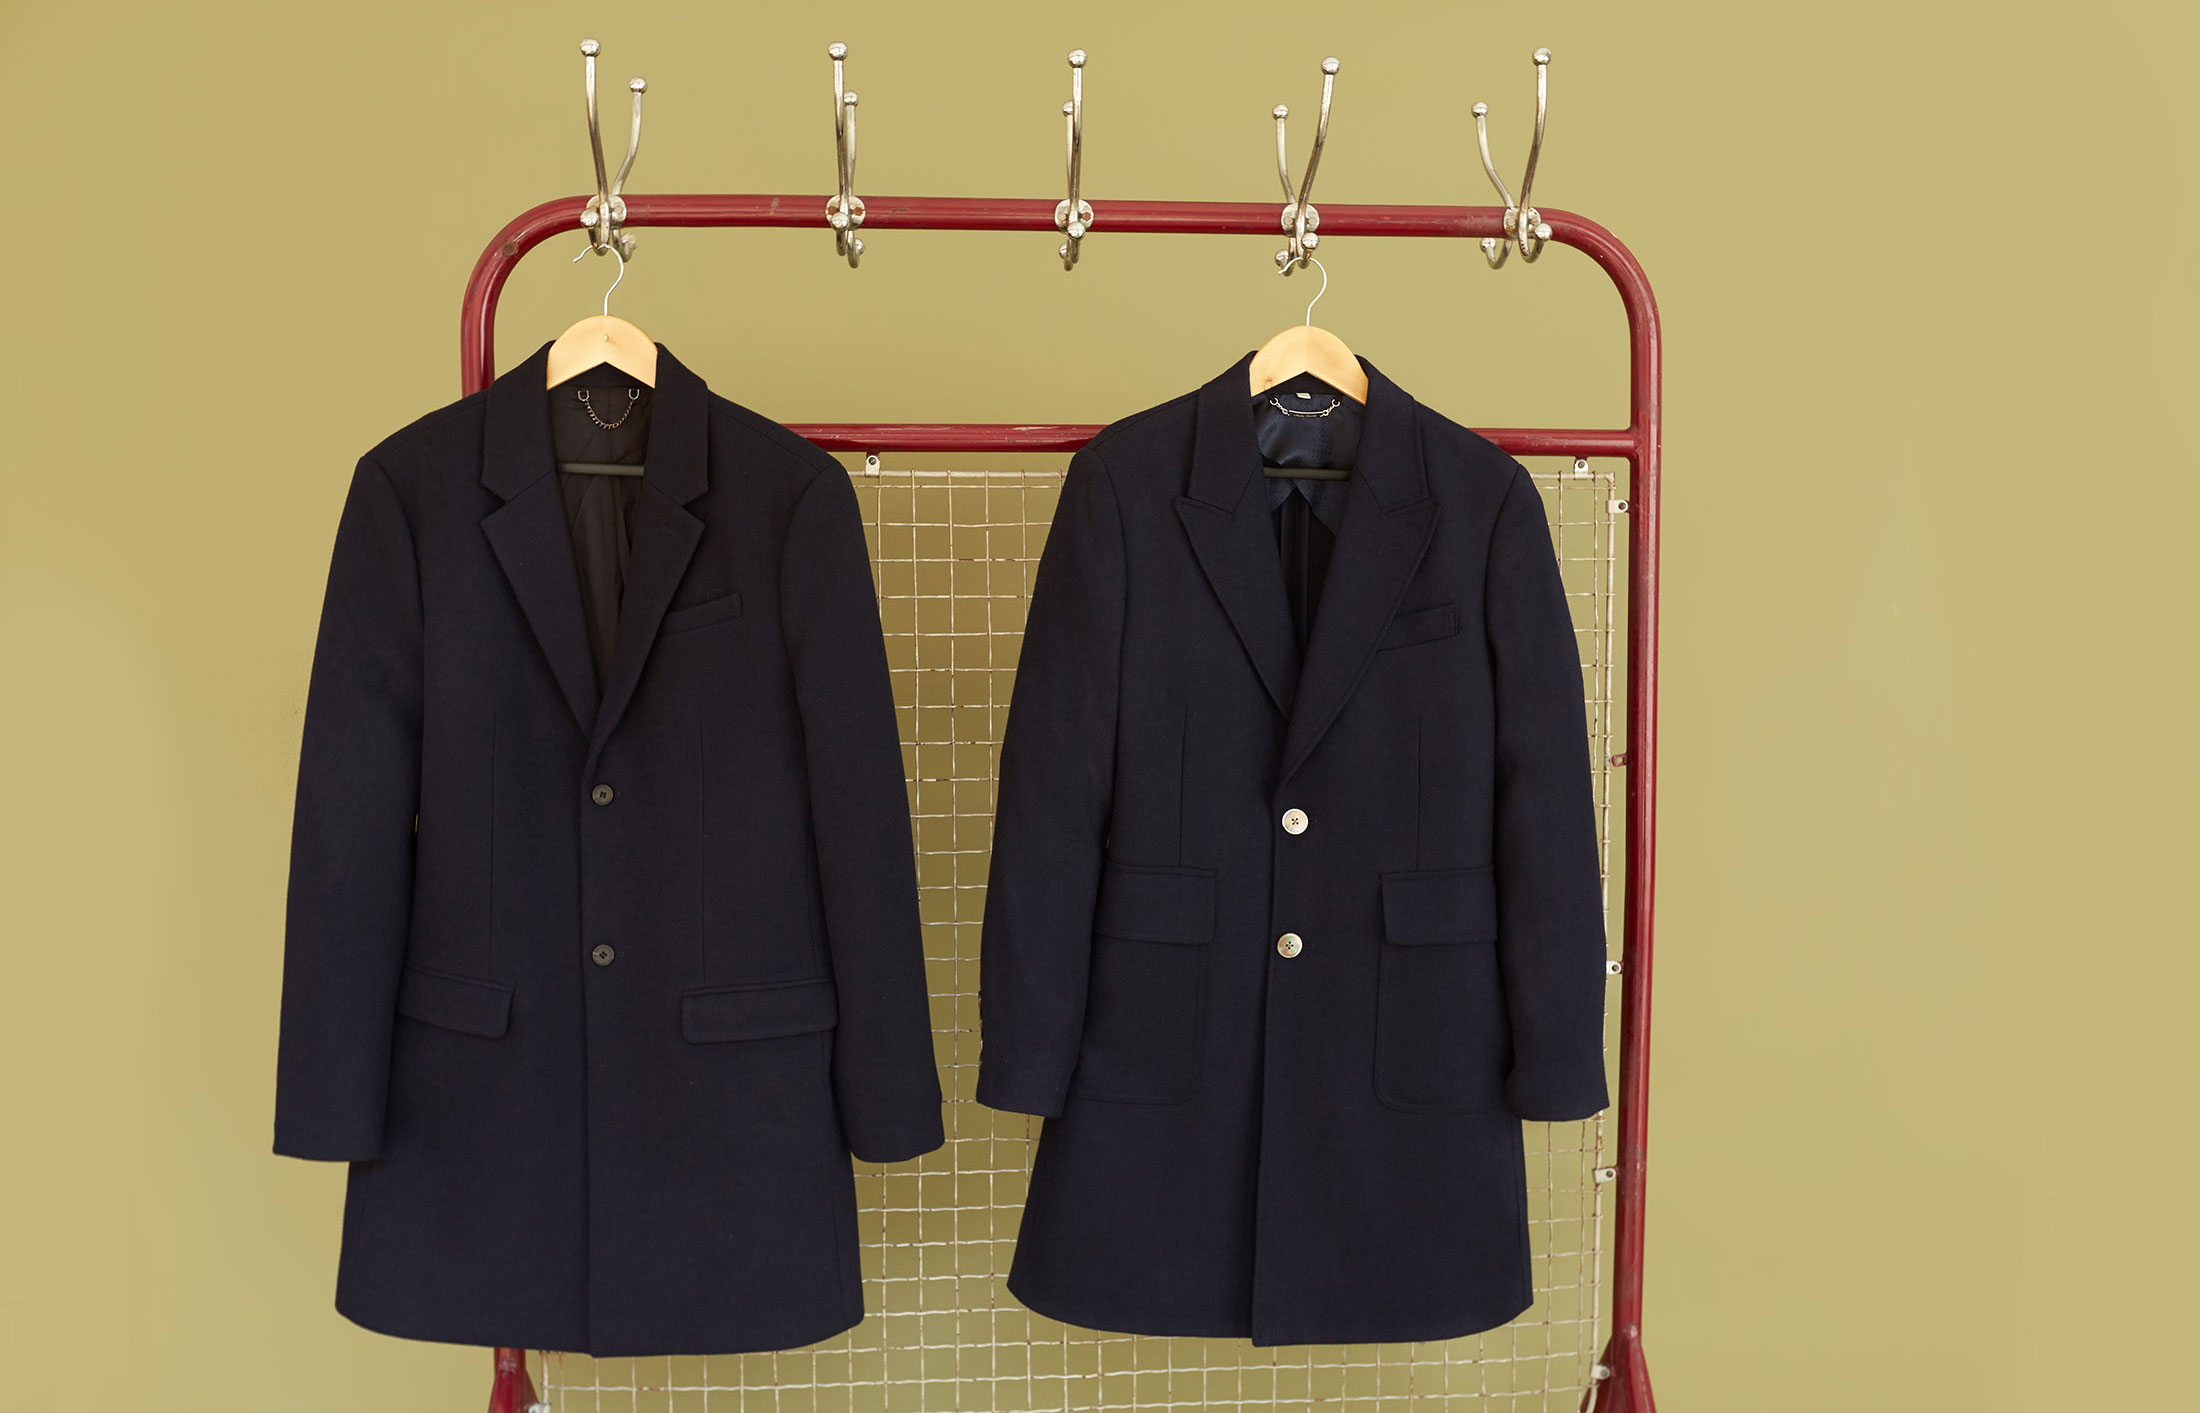 What is an overcoat?